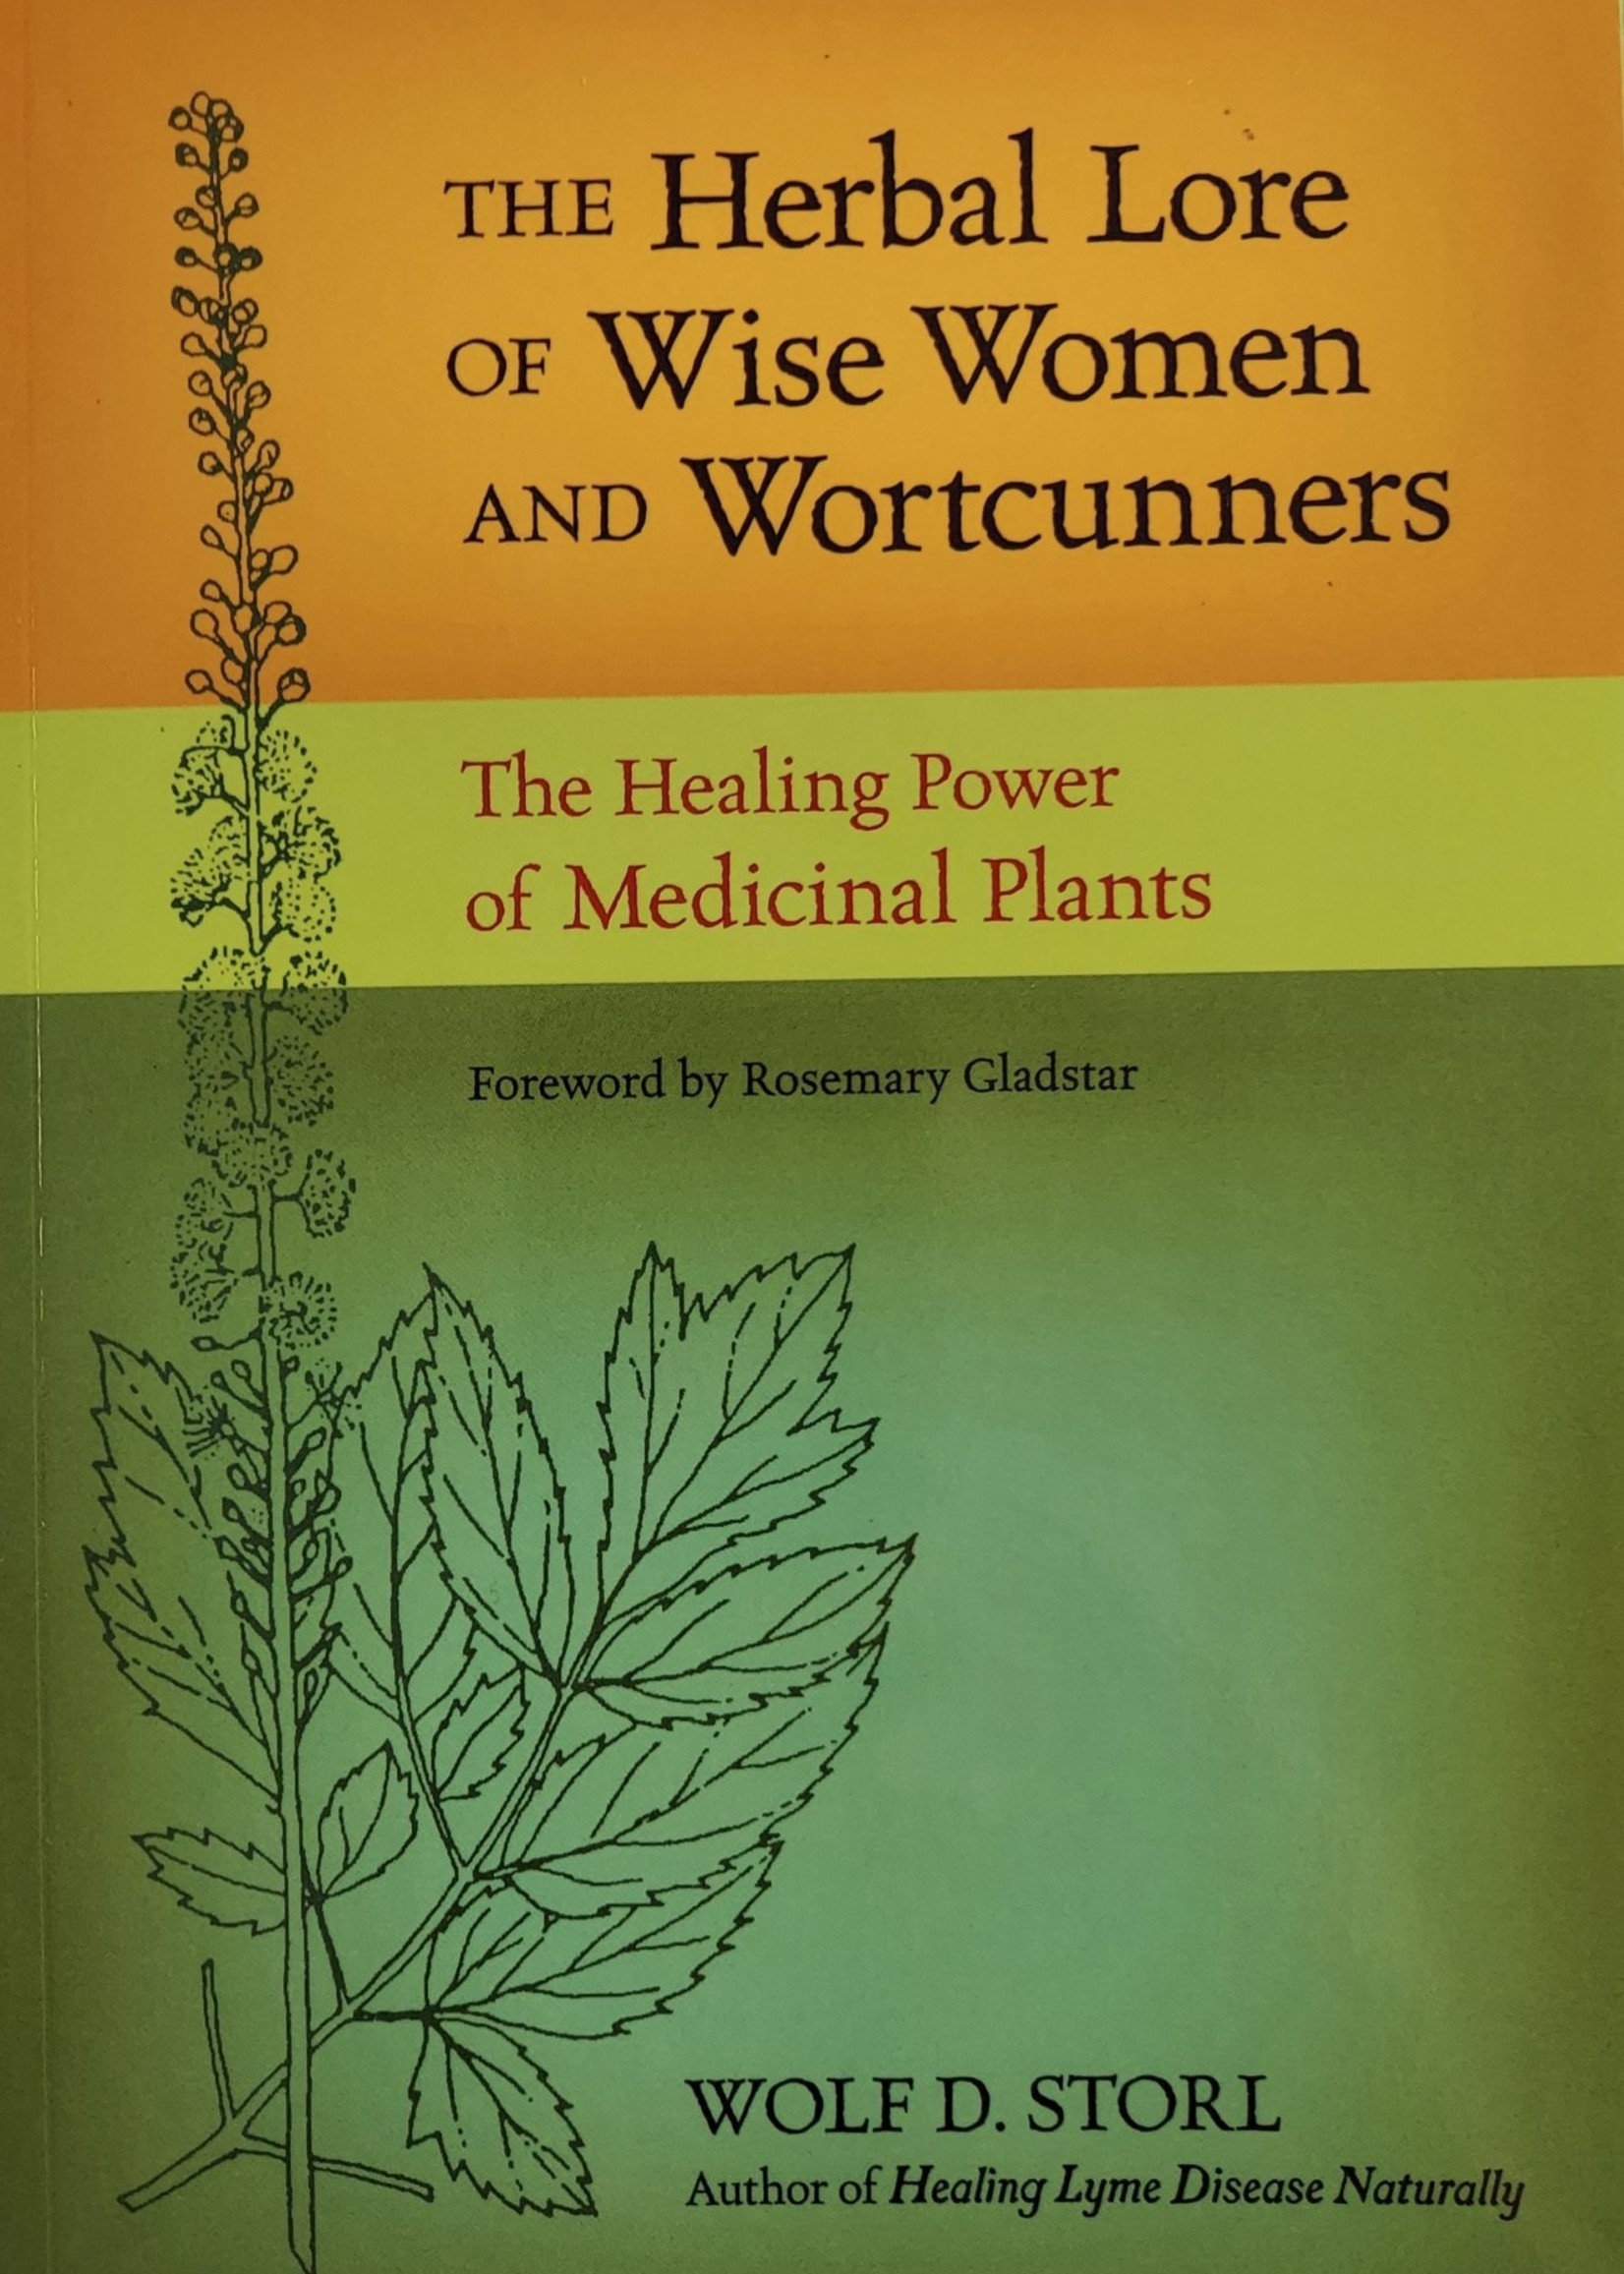 The Herbal Lore of Wise Women and Wortcunners-THE HEALING POWER OF MEDICINAL PLANTS By WOLF D. STORL Foreword by Rosemary Gladstar